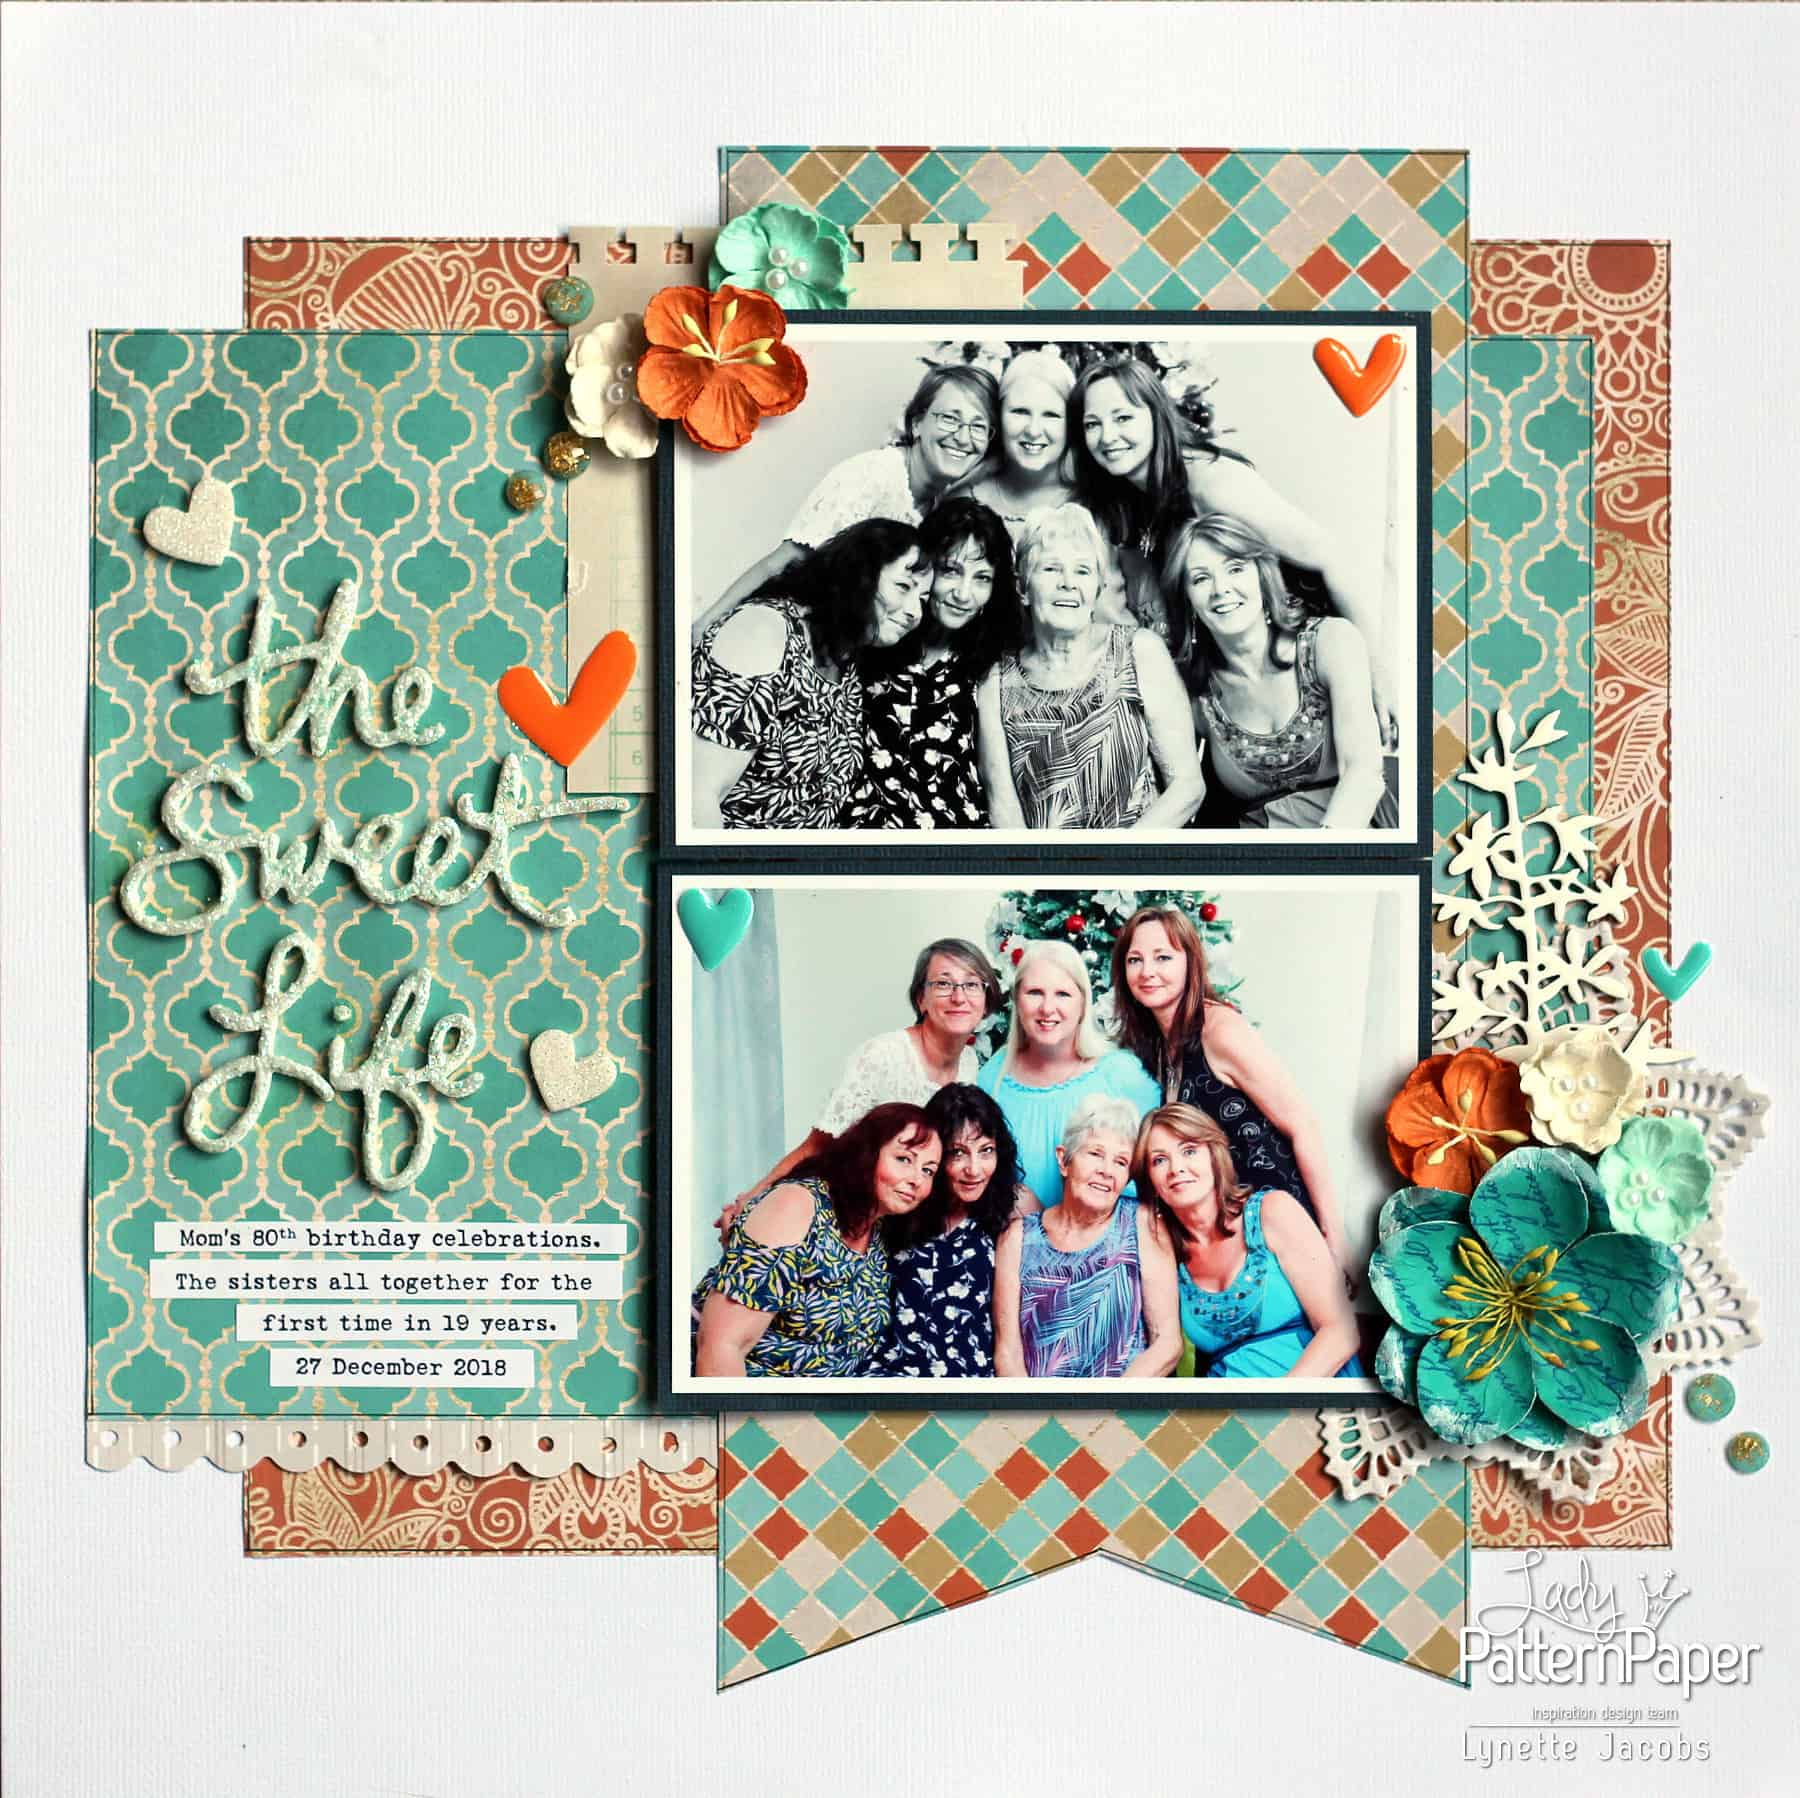 The Sweet Life - Sister TRIBE